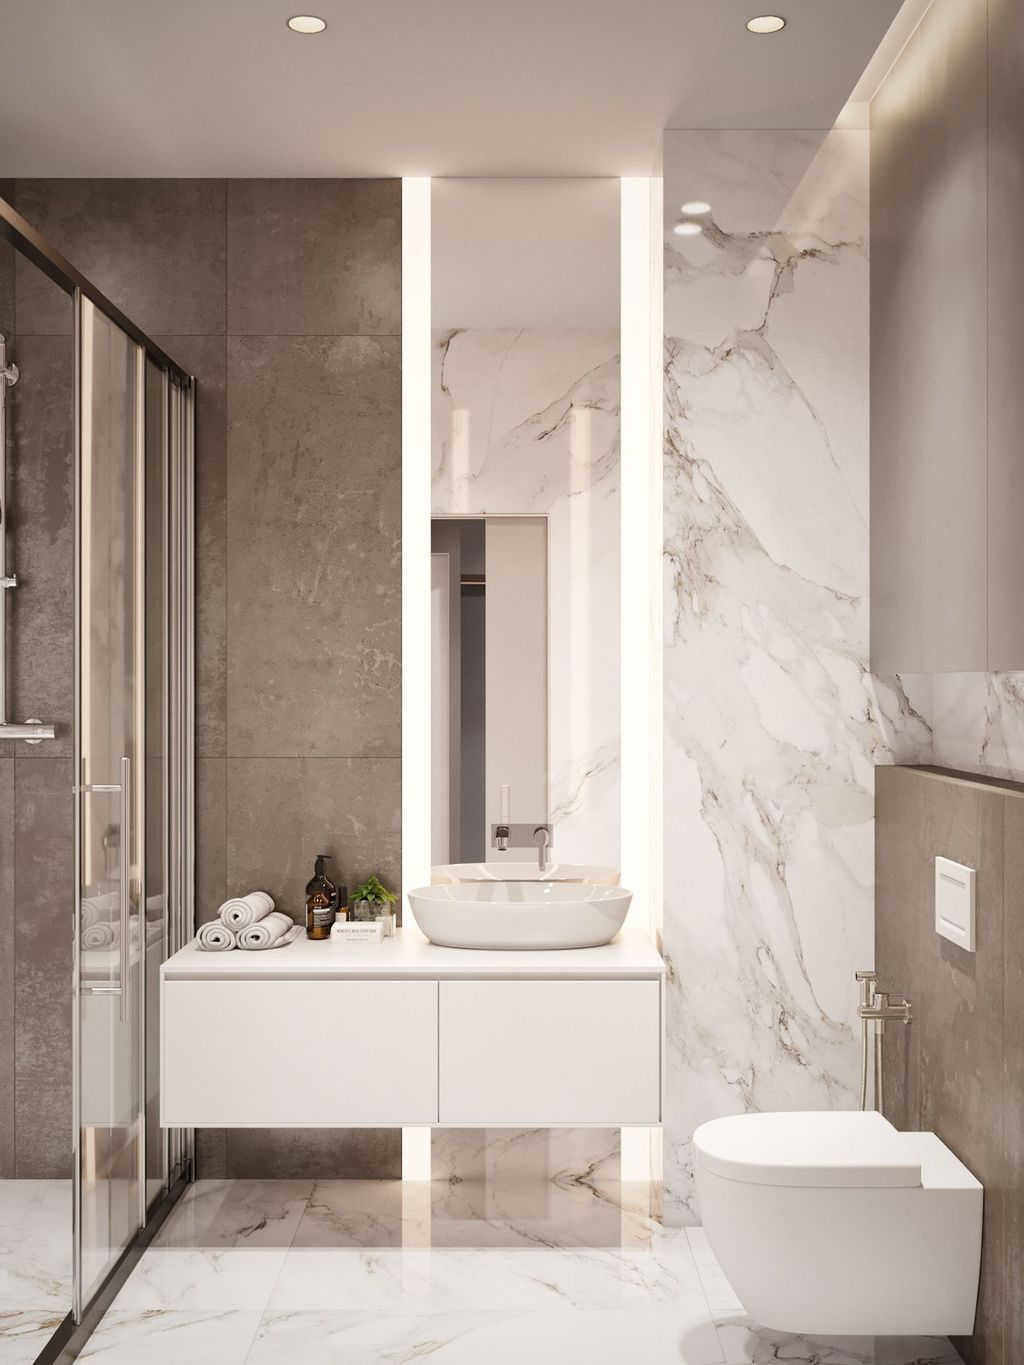 captivating small bathroom remodel ideas for space saving pinterest design and modern also rh